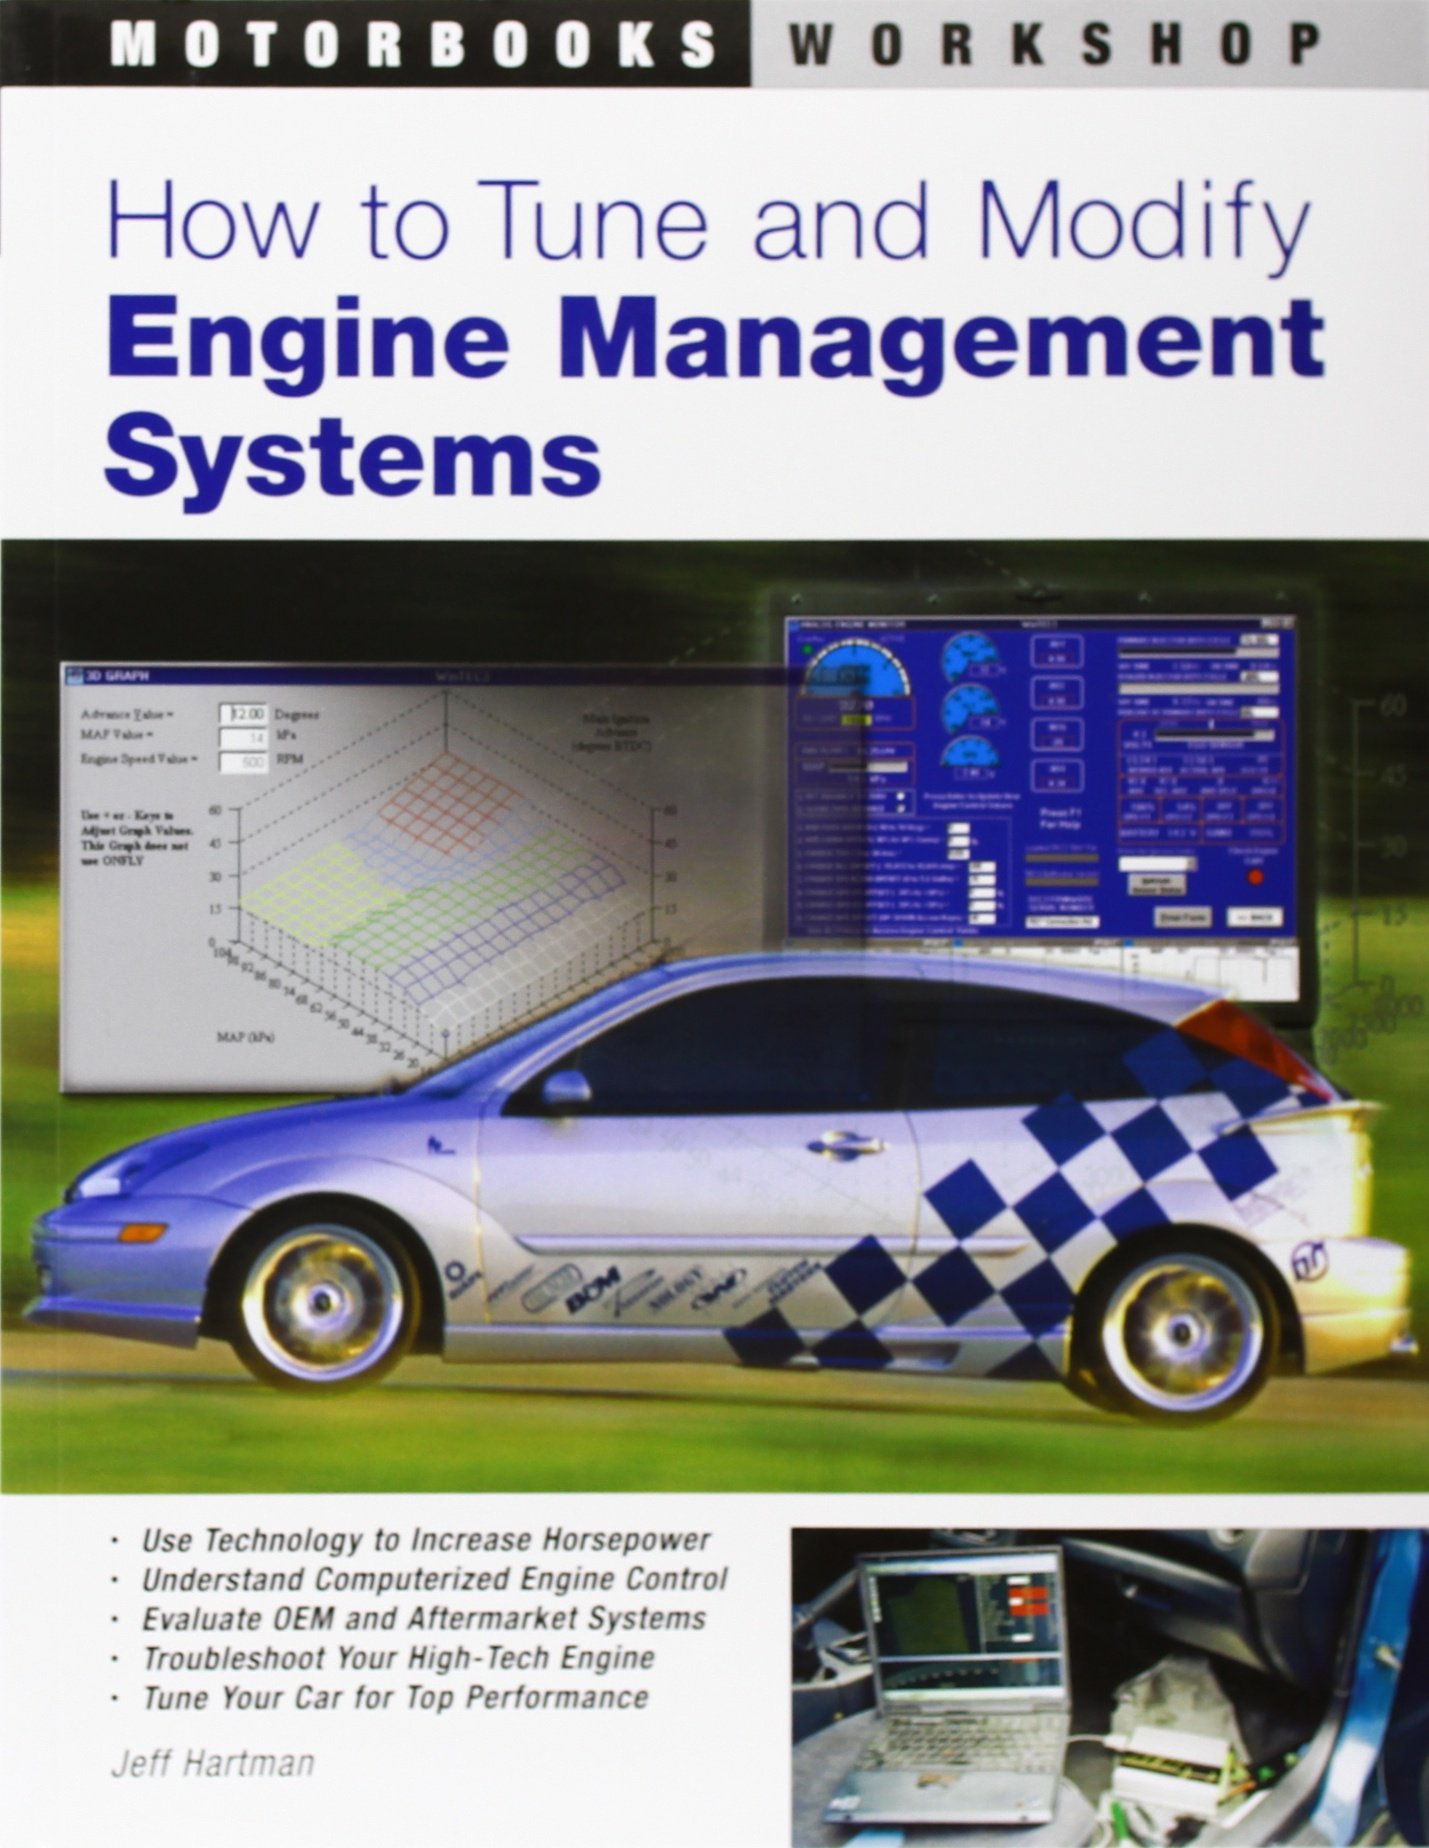 How To Tune And Modify Engine Management Systems Motorbooks